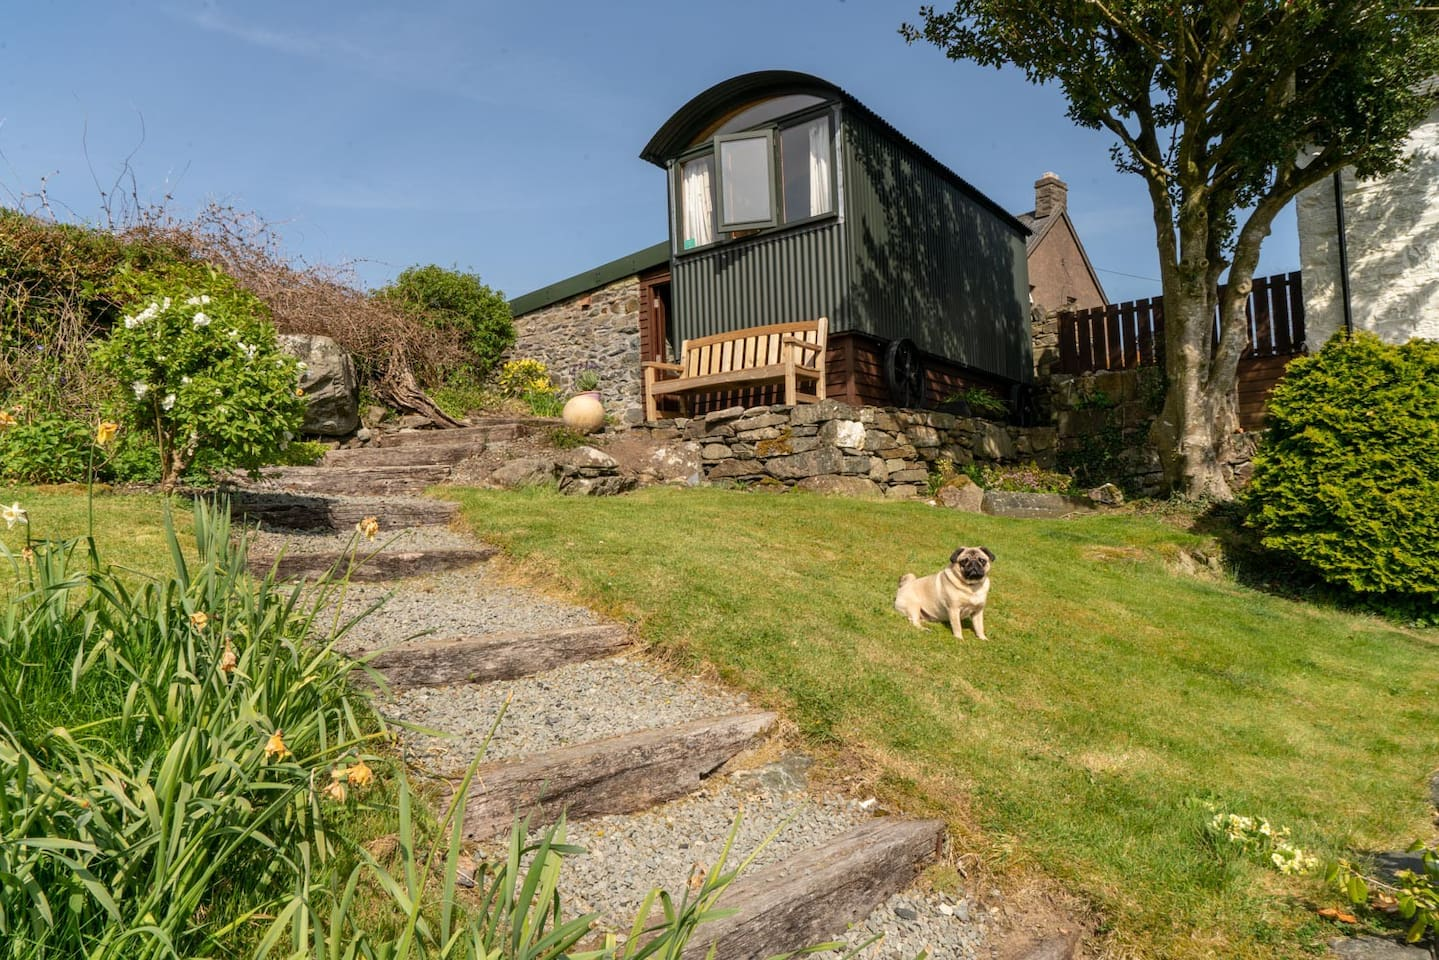 Glyn Shepherds Hut complete with an occasional visit from Sybil the friendly pug!